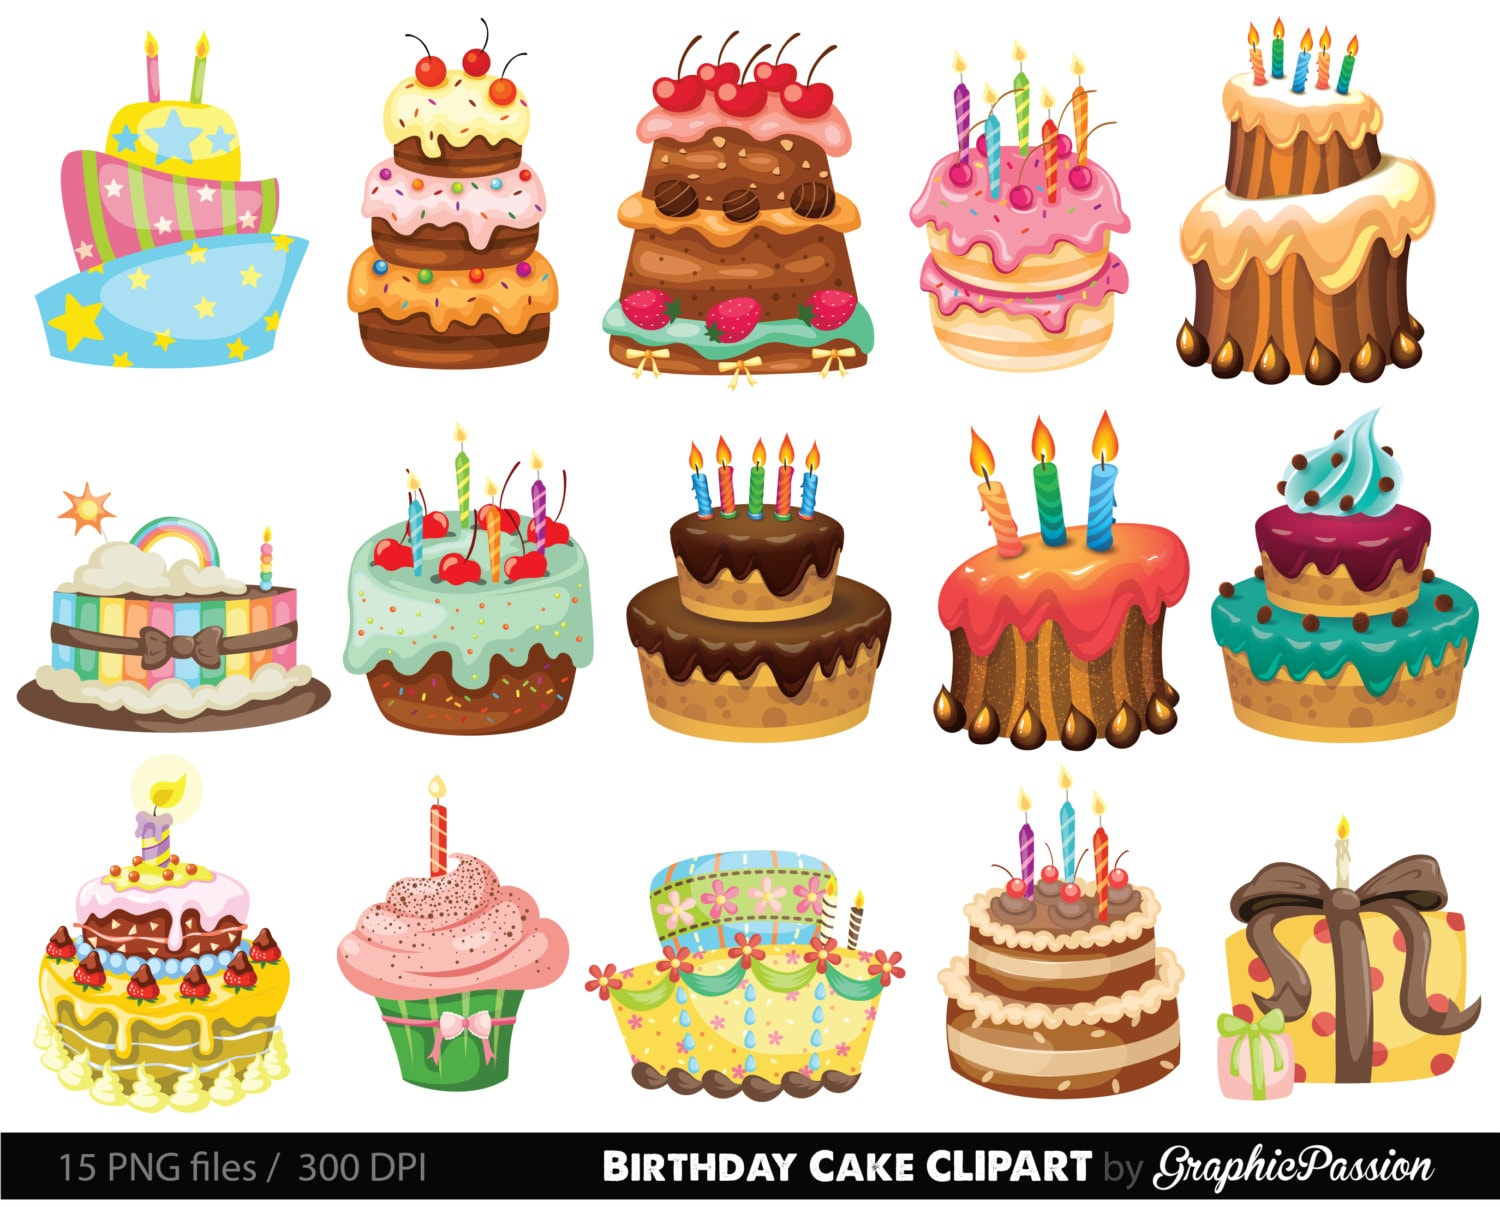 100 Birthday Cake Pictures Download Free Images  Stock